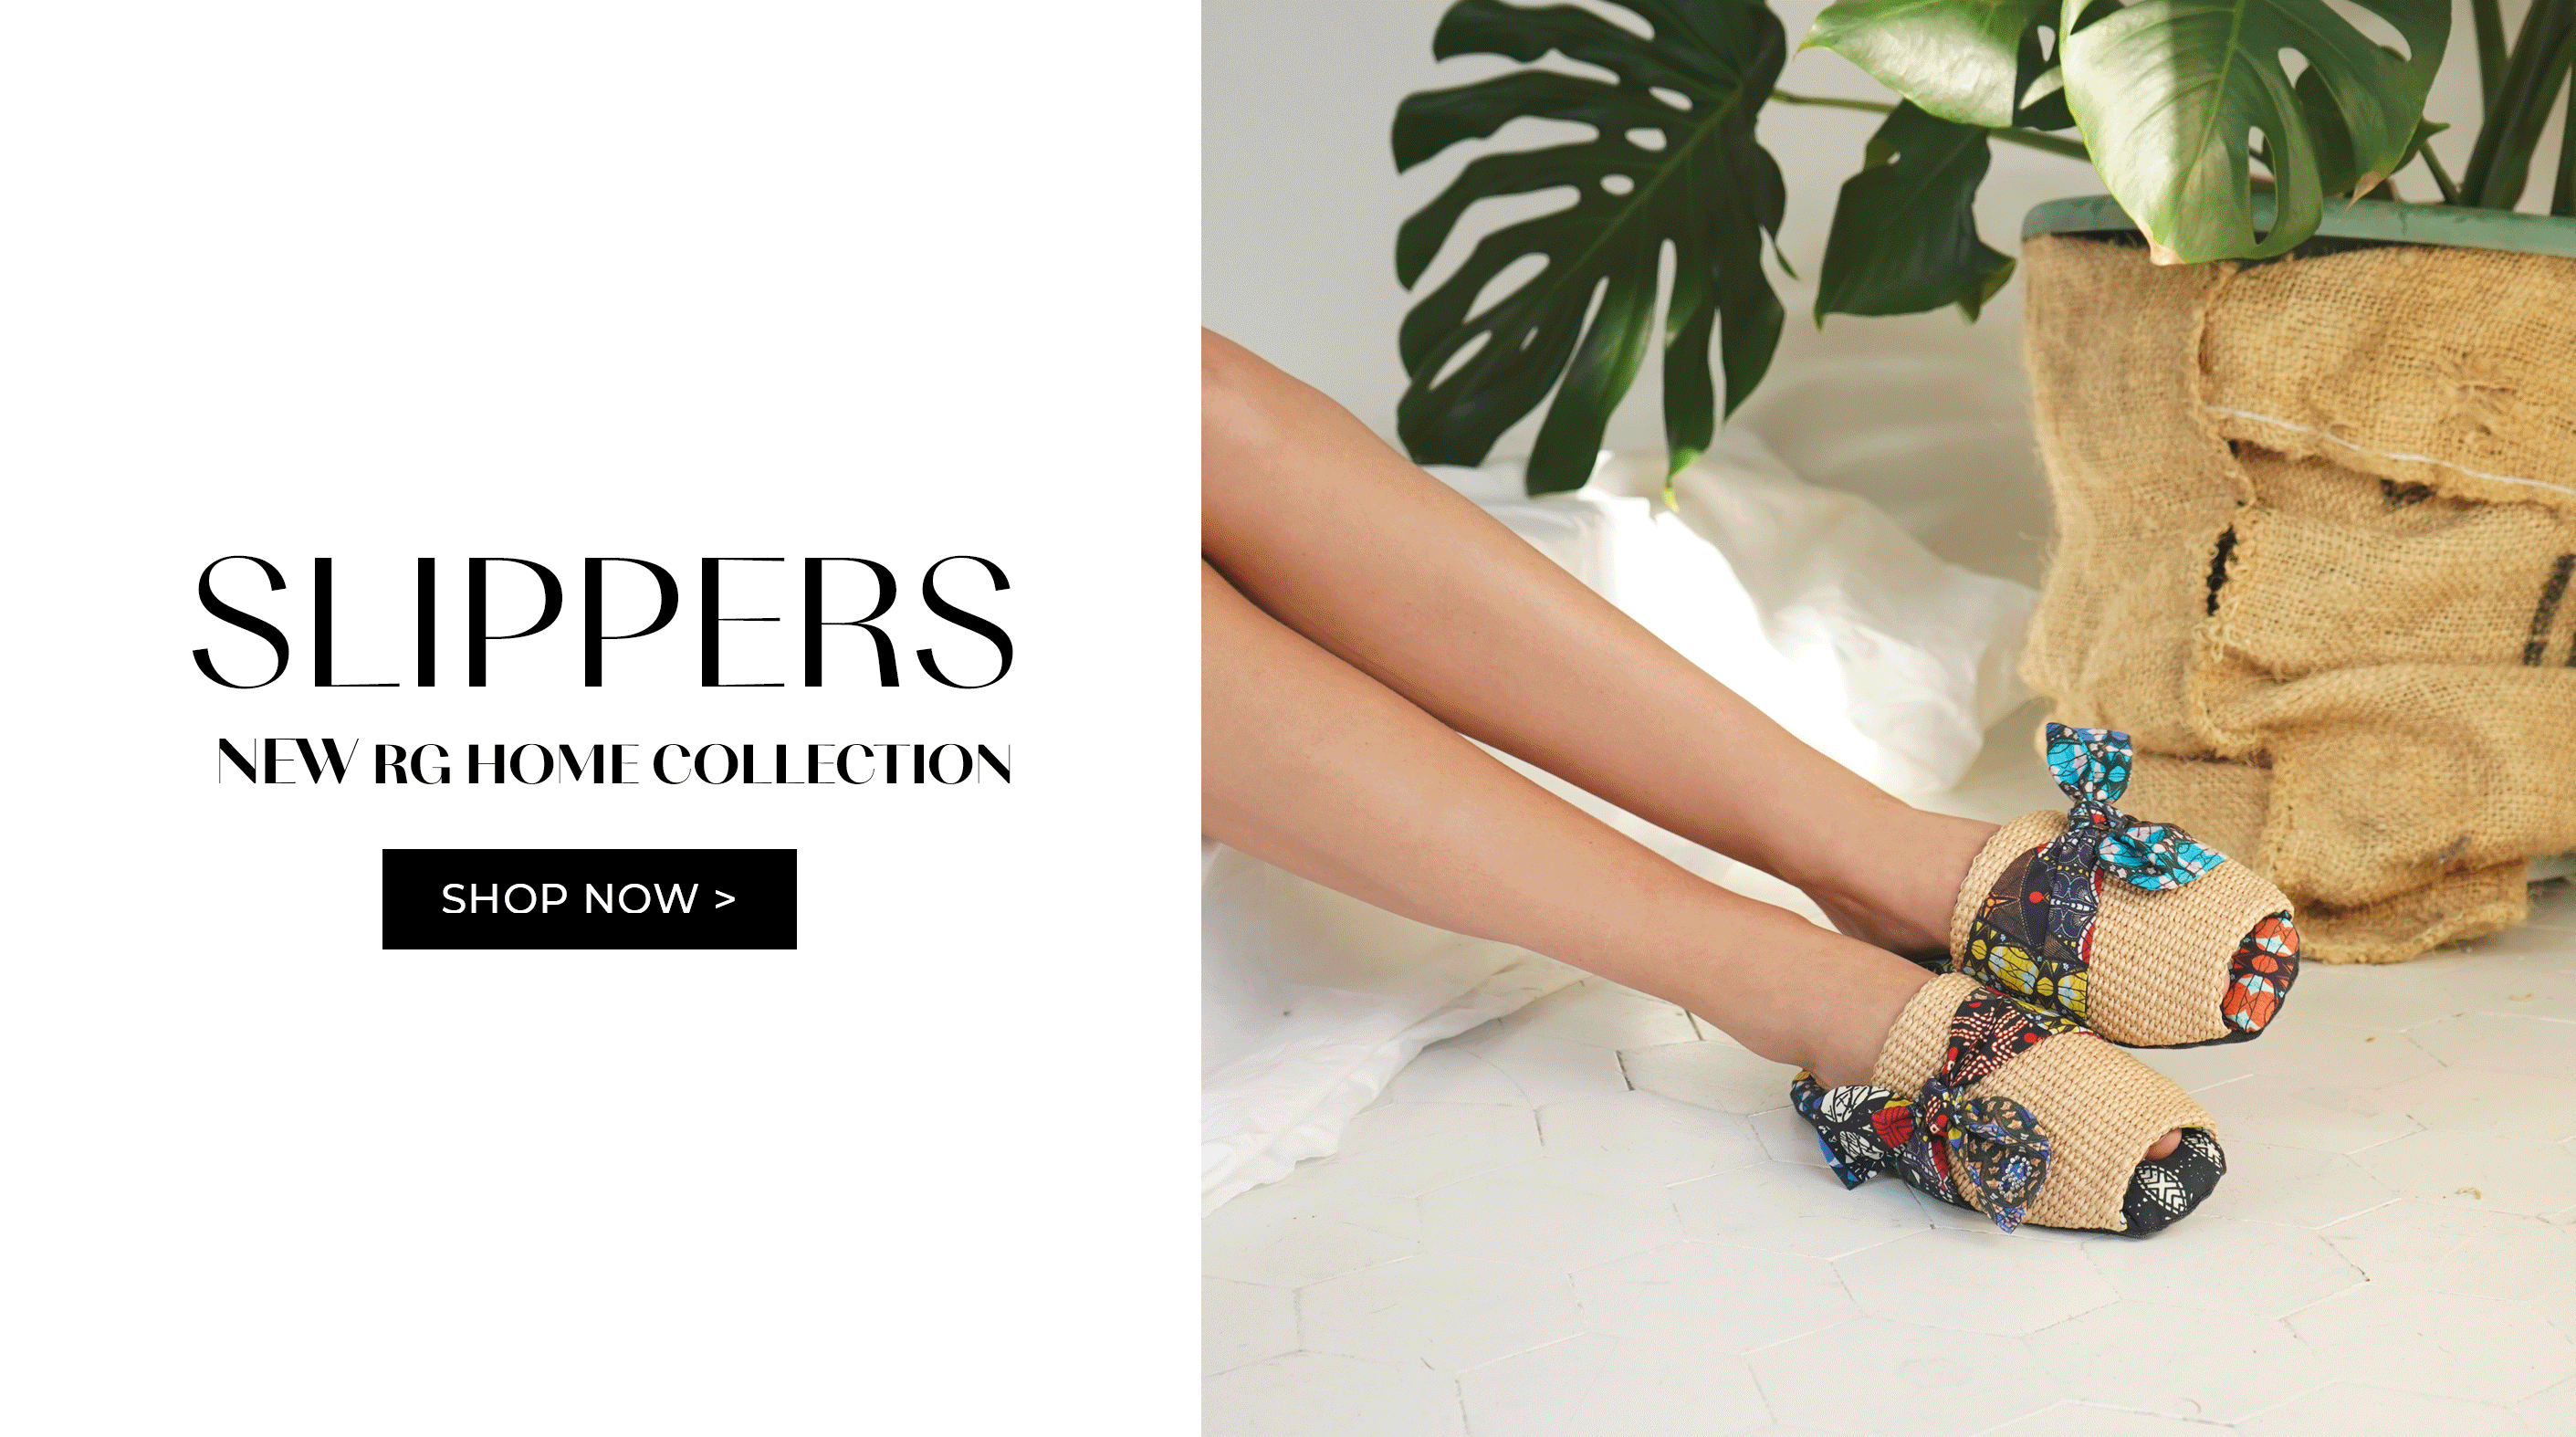 Slippers - Home Collection